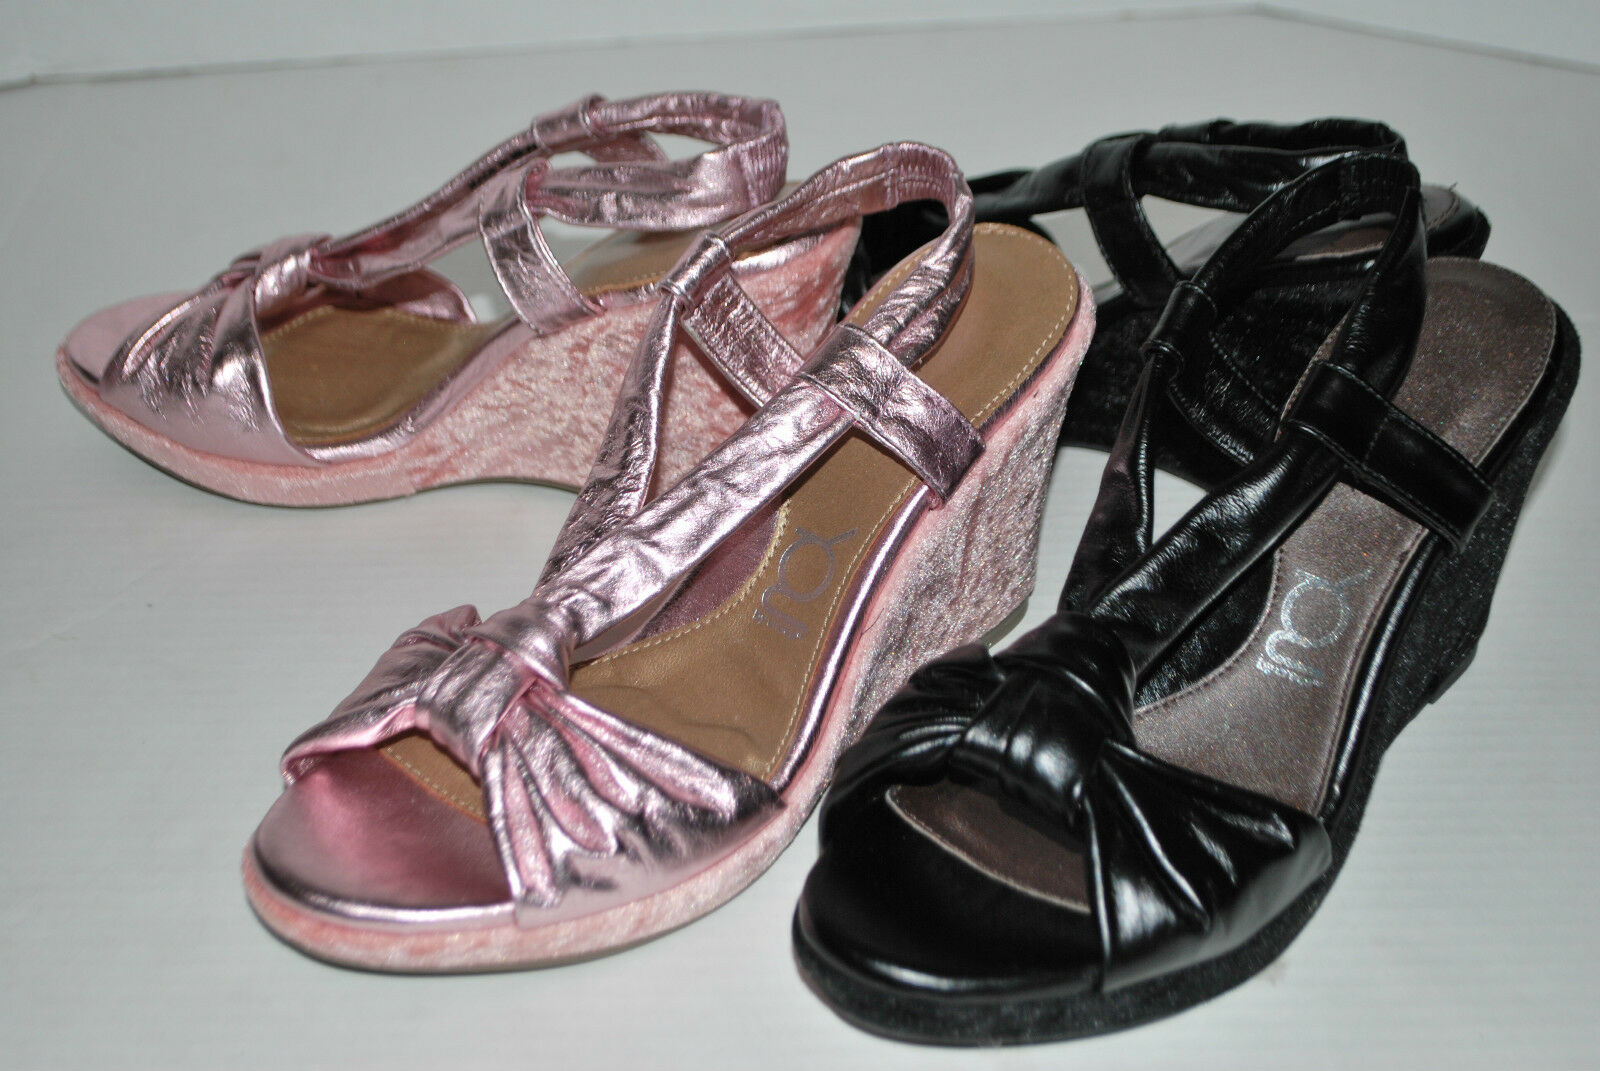 NEW METALLIC YOU BY CROCS LAURALOU LEATHER strappy sandals PINK METALLIC NEW or BLACK 9 10 c068ee